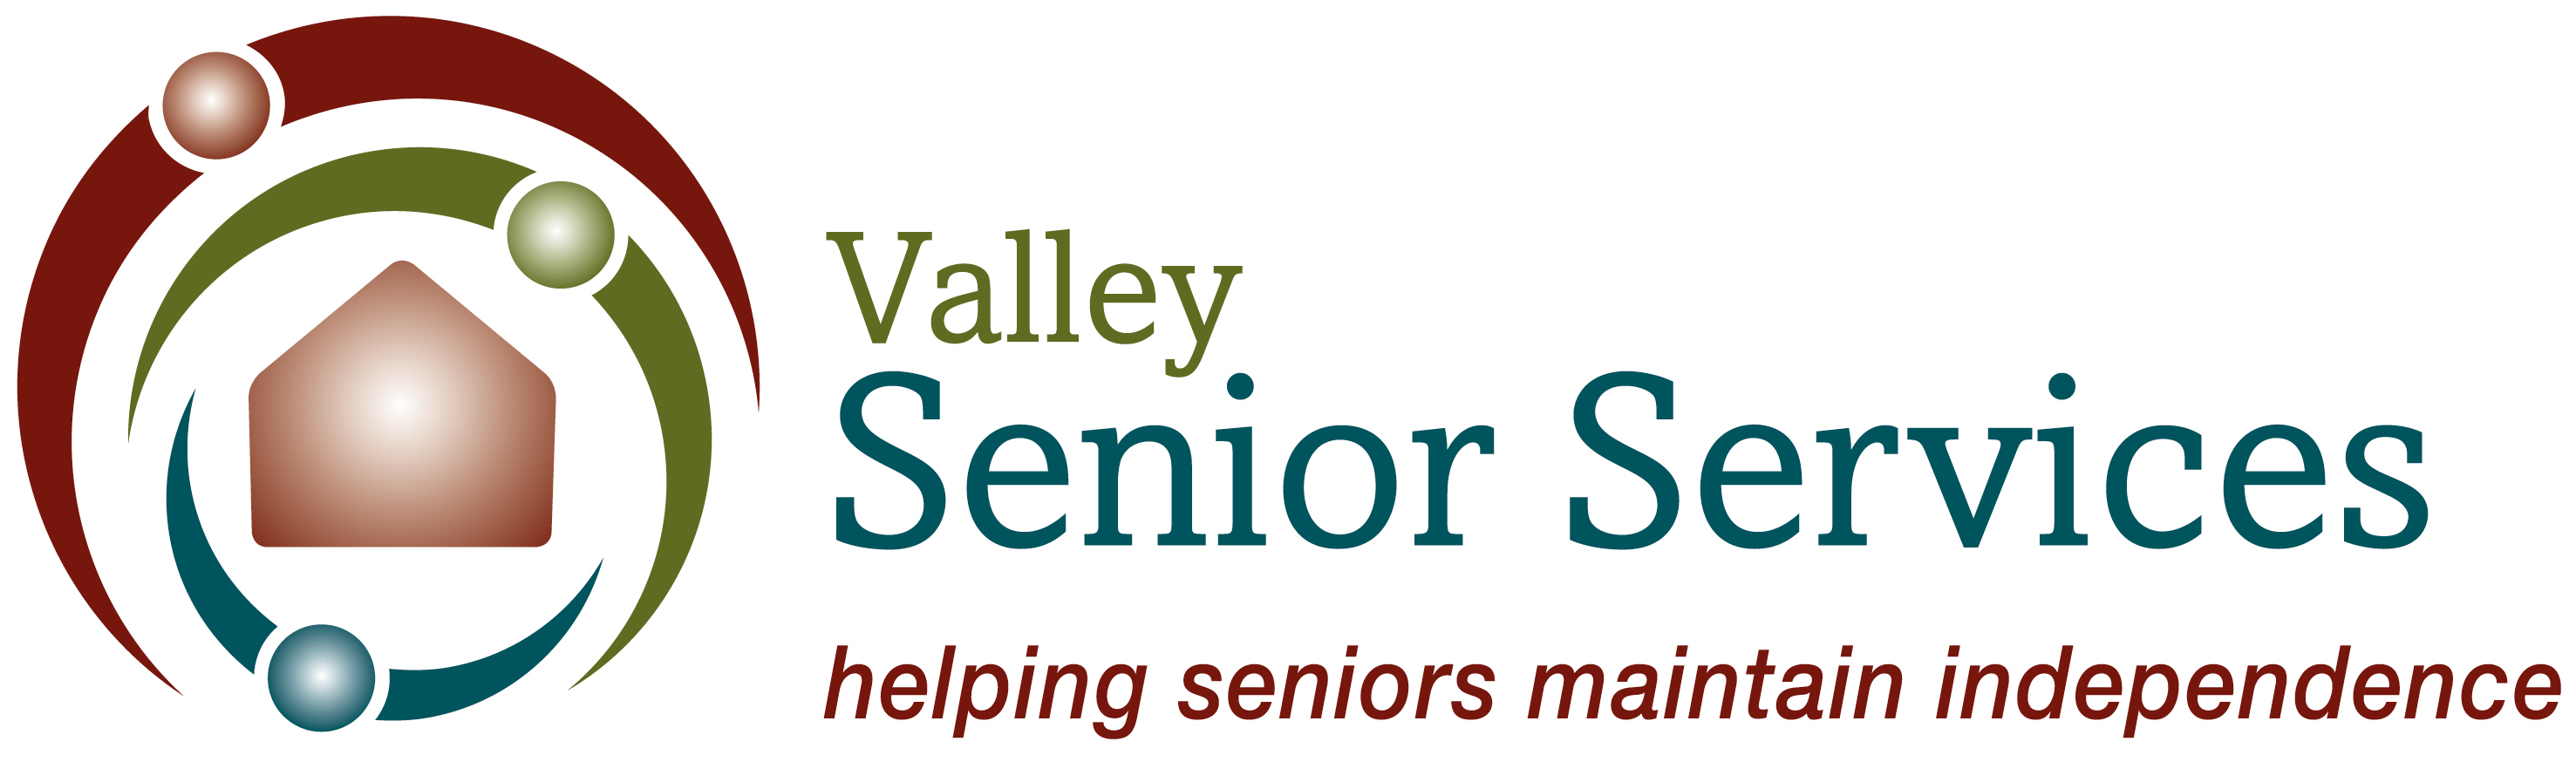 Valley Senior Services